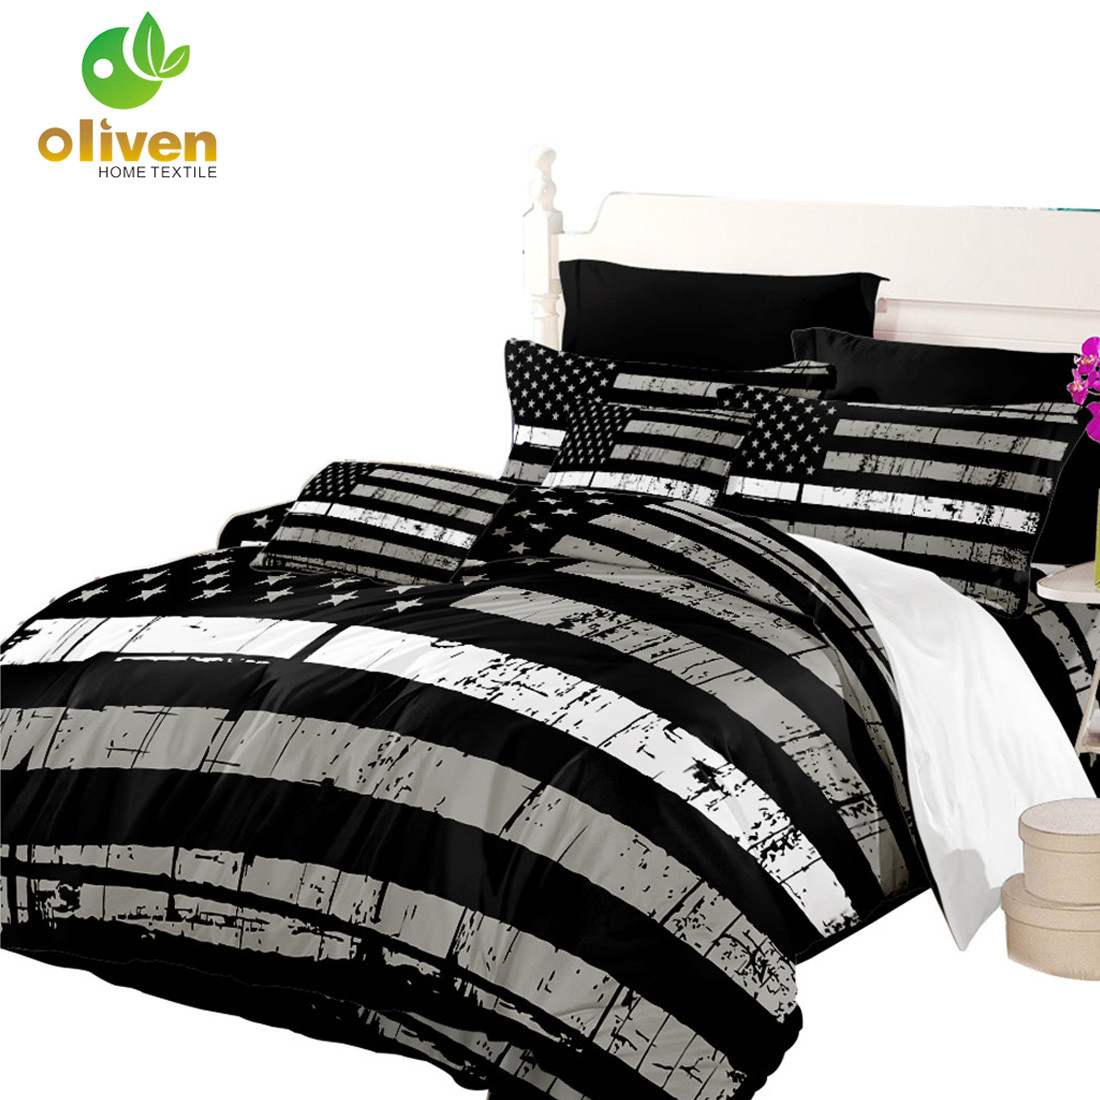 Antique Flag Bedding Set Black White American Flag Design Duvet Cover Set Stars Stripes Bedding King Queen Bedclothes 3Pcs D35Antique Flag Bedding Set Black White American Flag Design Duvet Cover Set Stars Stripes Bedding King Queen Bedclothes 3Pcs D35